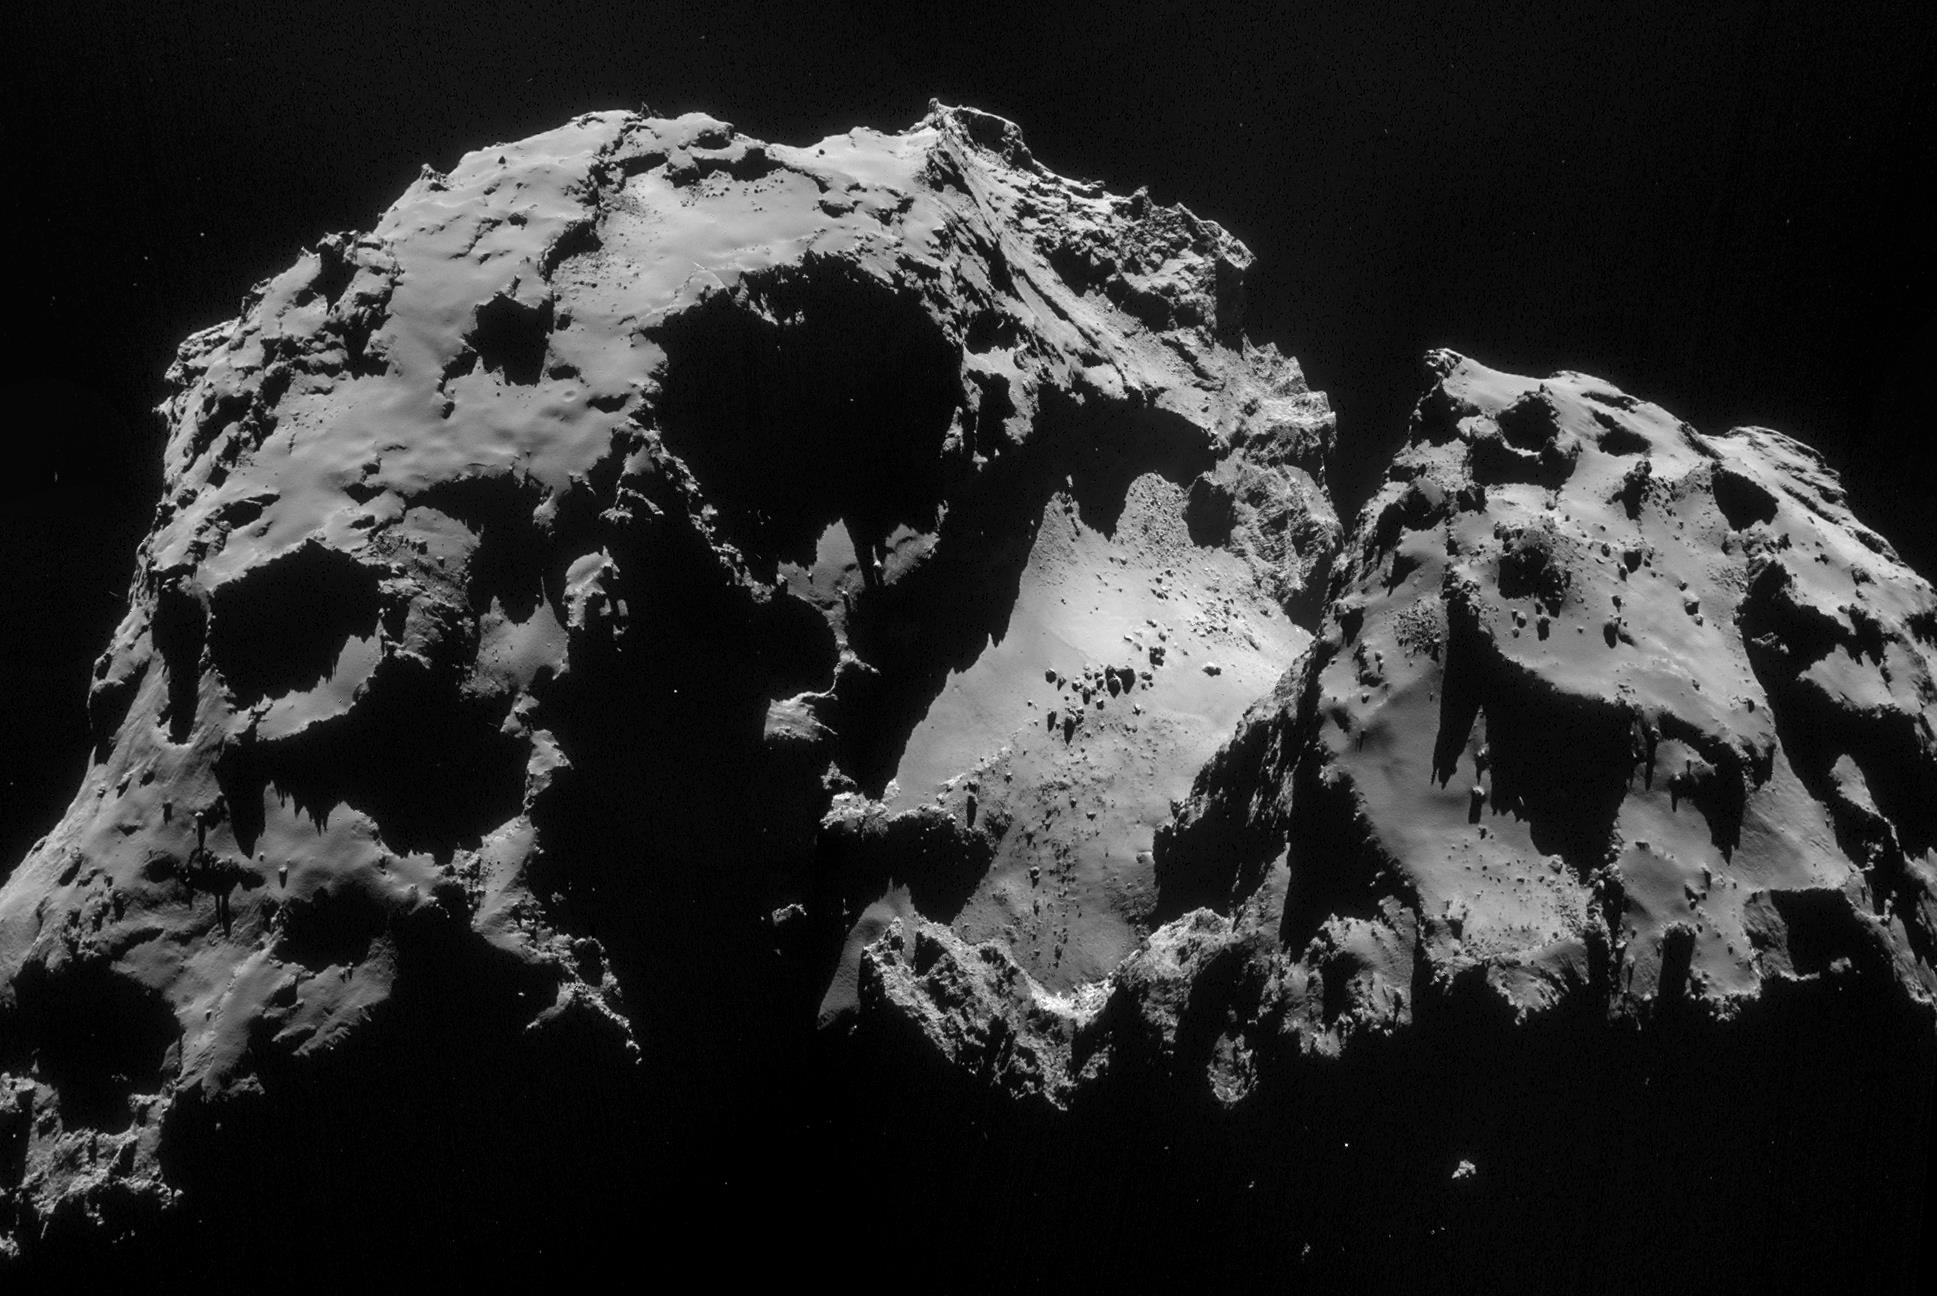 Lander in awkward spot on comet, but sends pictures